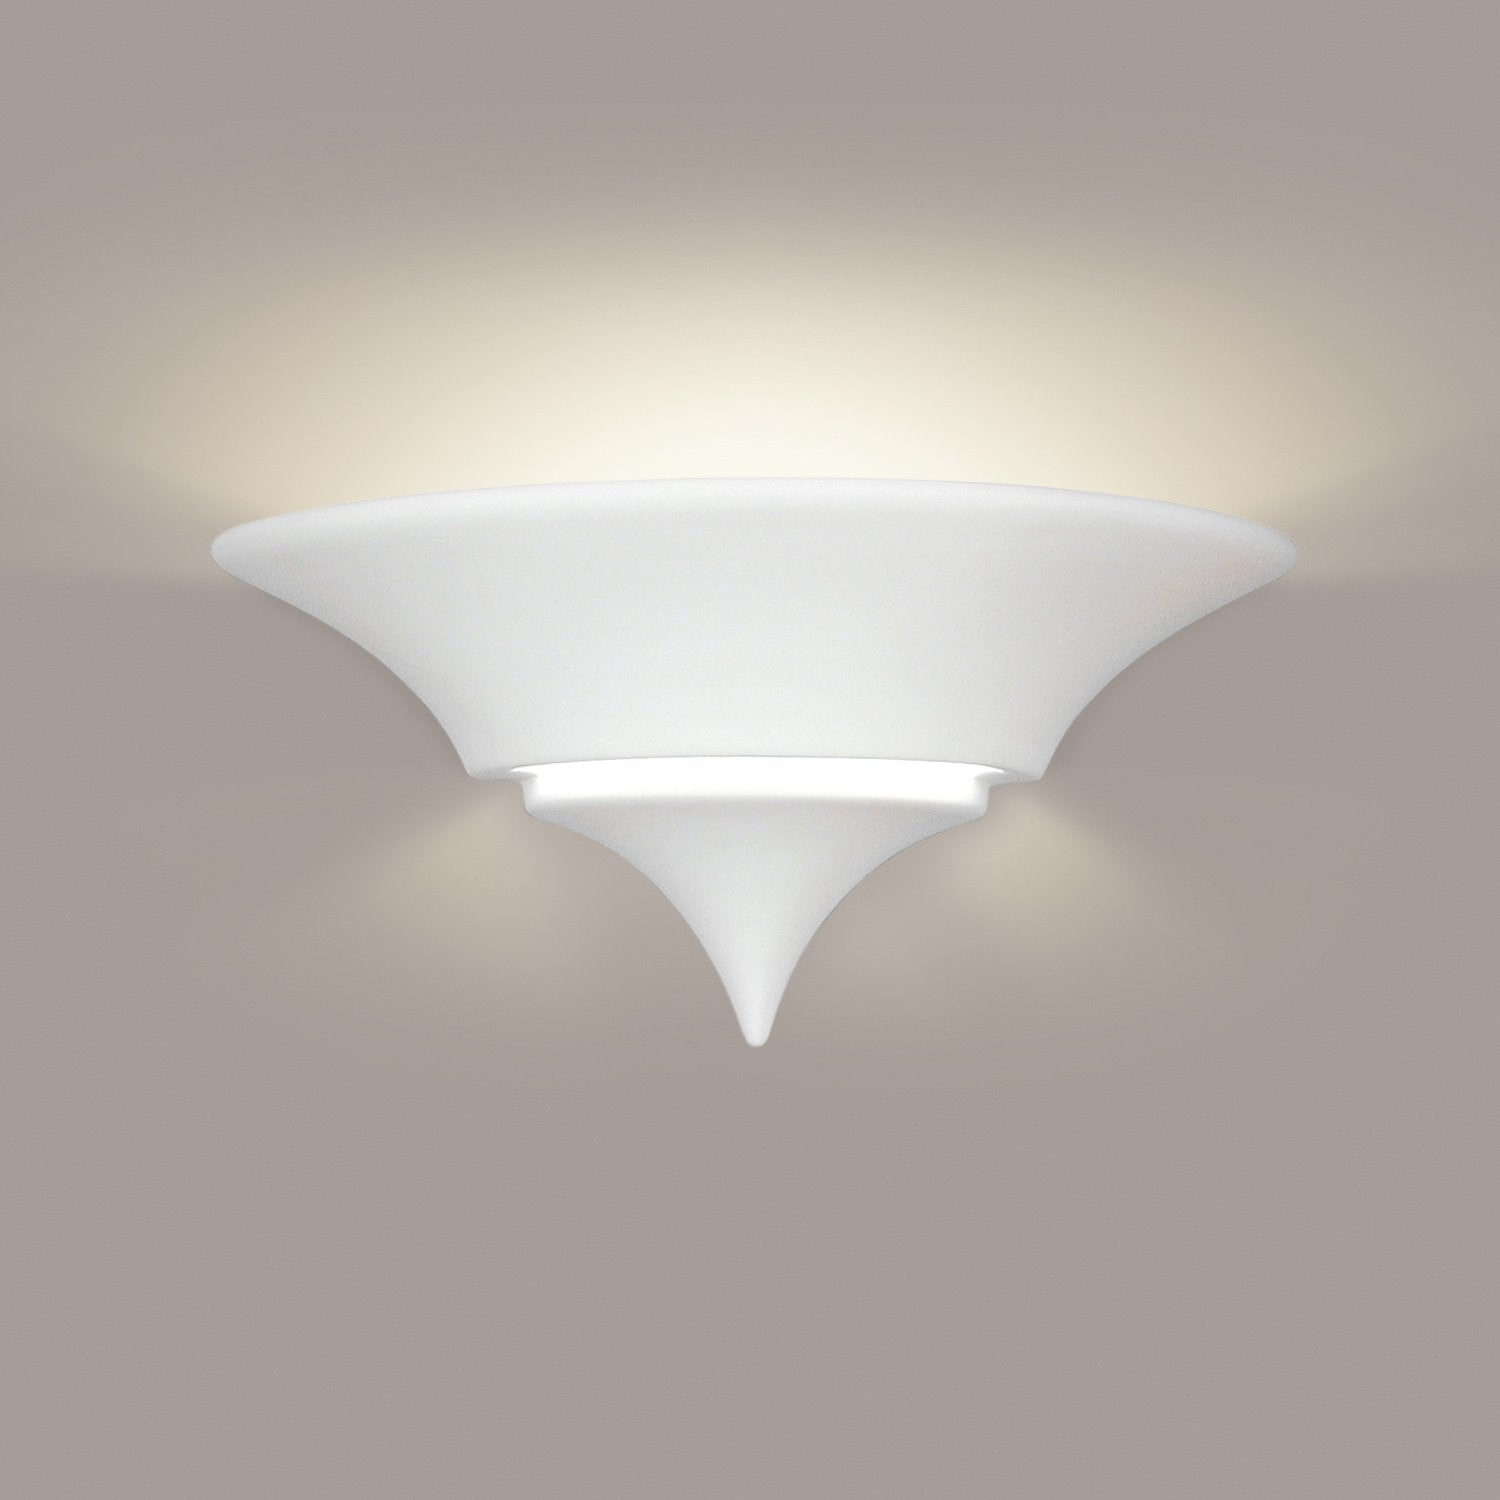 A19 401-CFL13-MB1 Islands of Light Collection Atlantis Ivory Black Marble Finish Wall Sconce